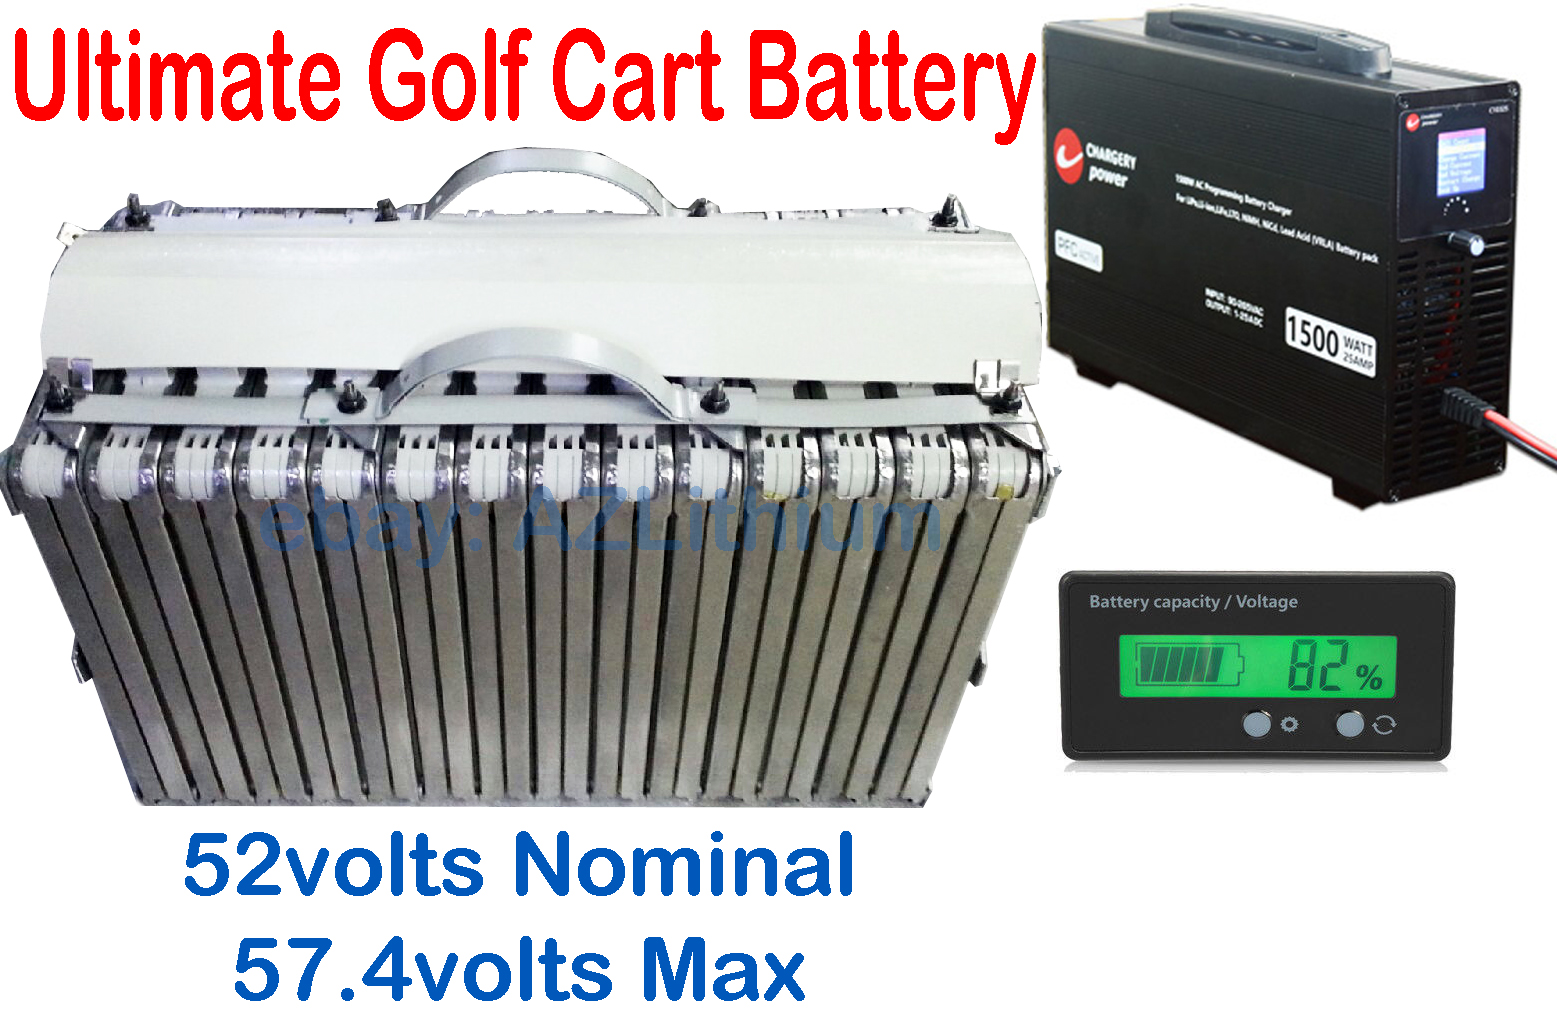 2014 Nissan Leaf 57volts 7kwh 120AH 14s Lithium Battery 48V Golf Cart, Charger, Meter 54K